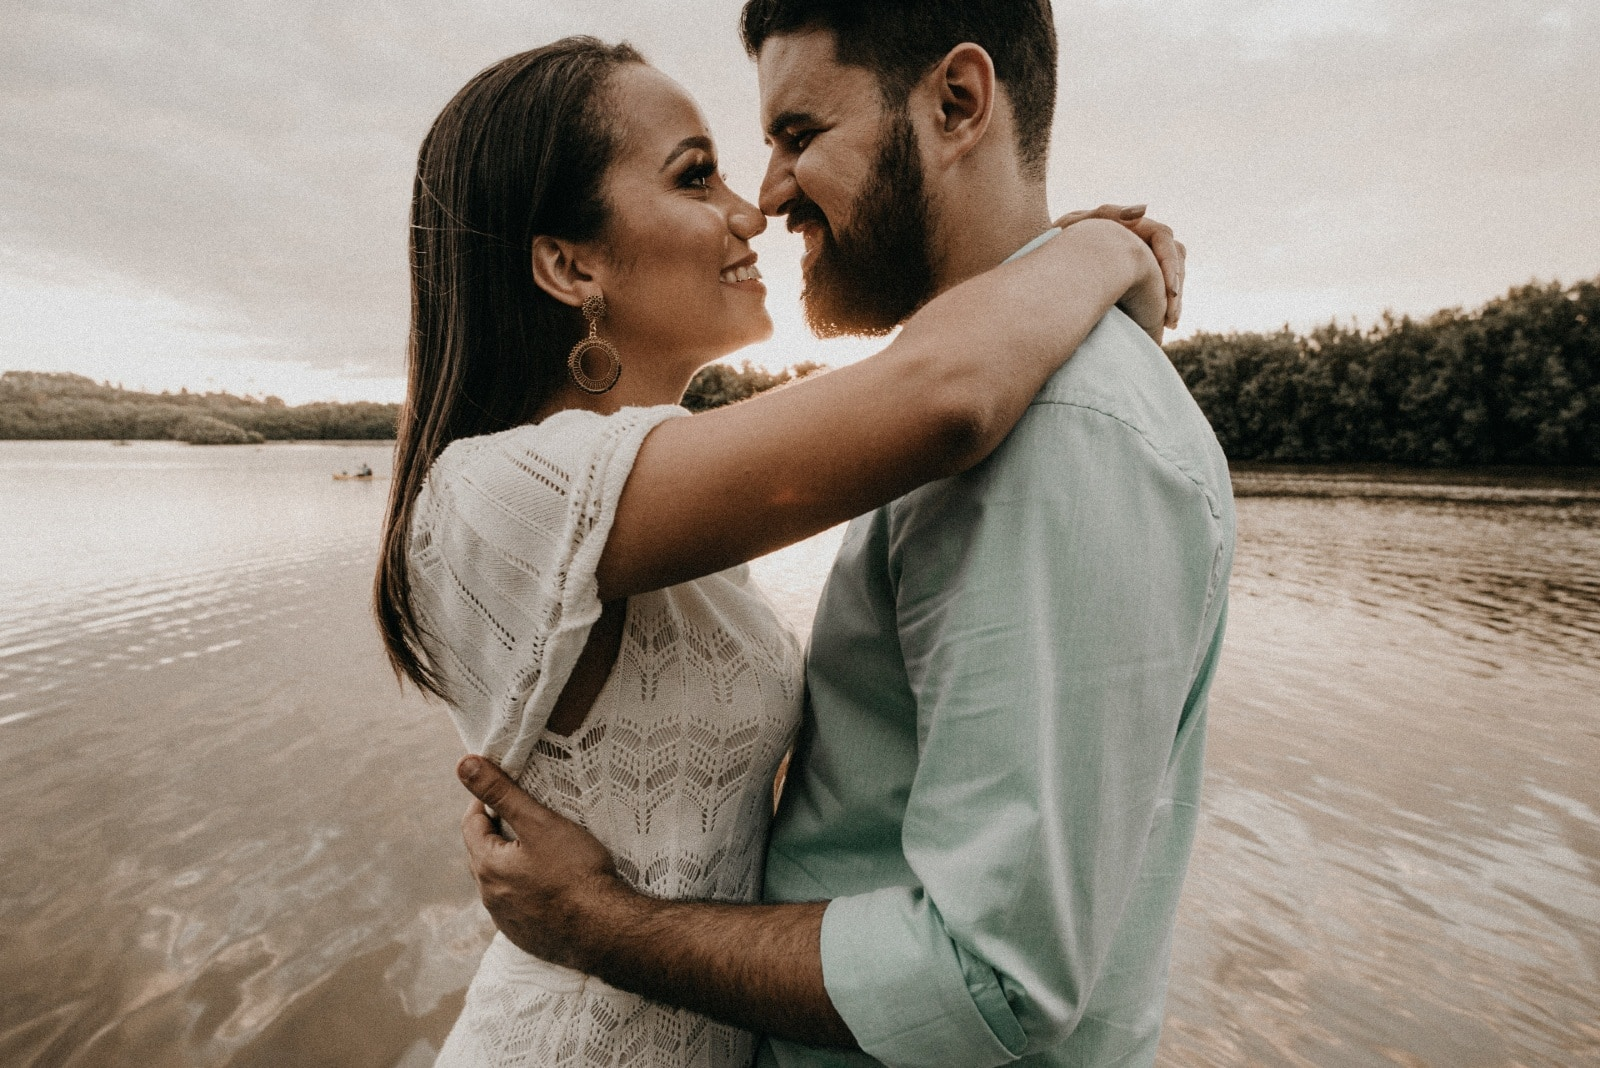 man and woman hugging while standing near water